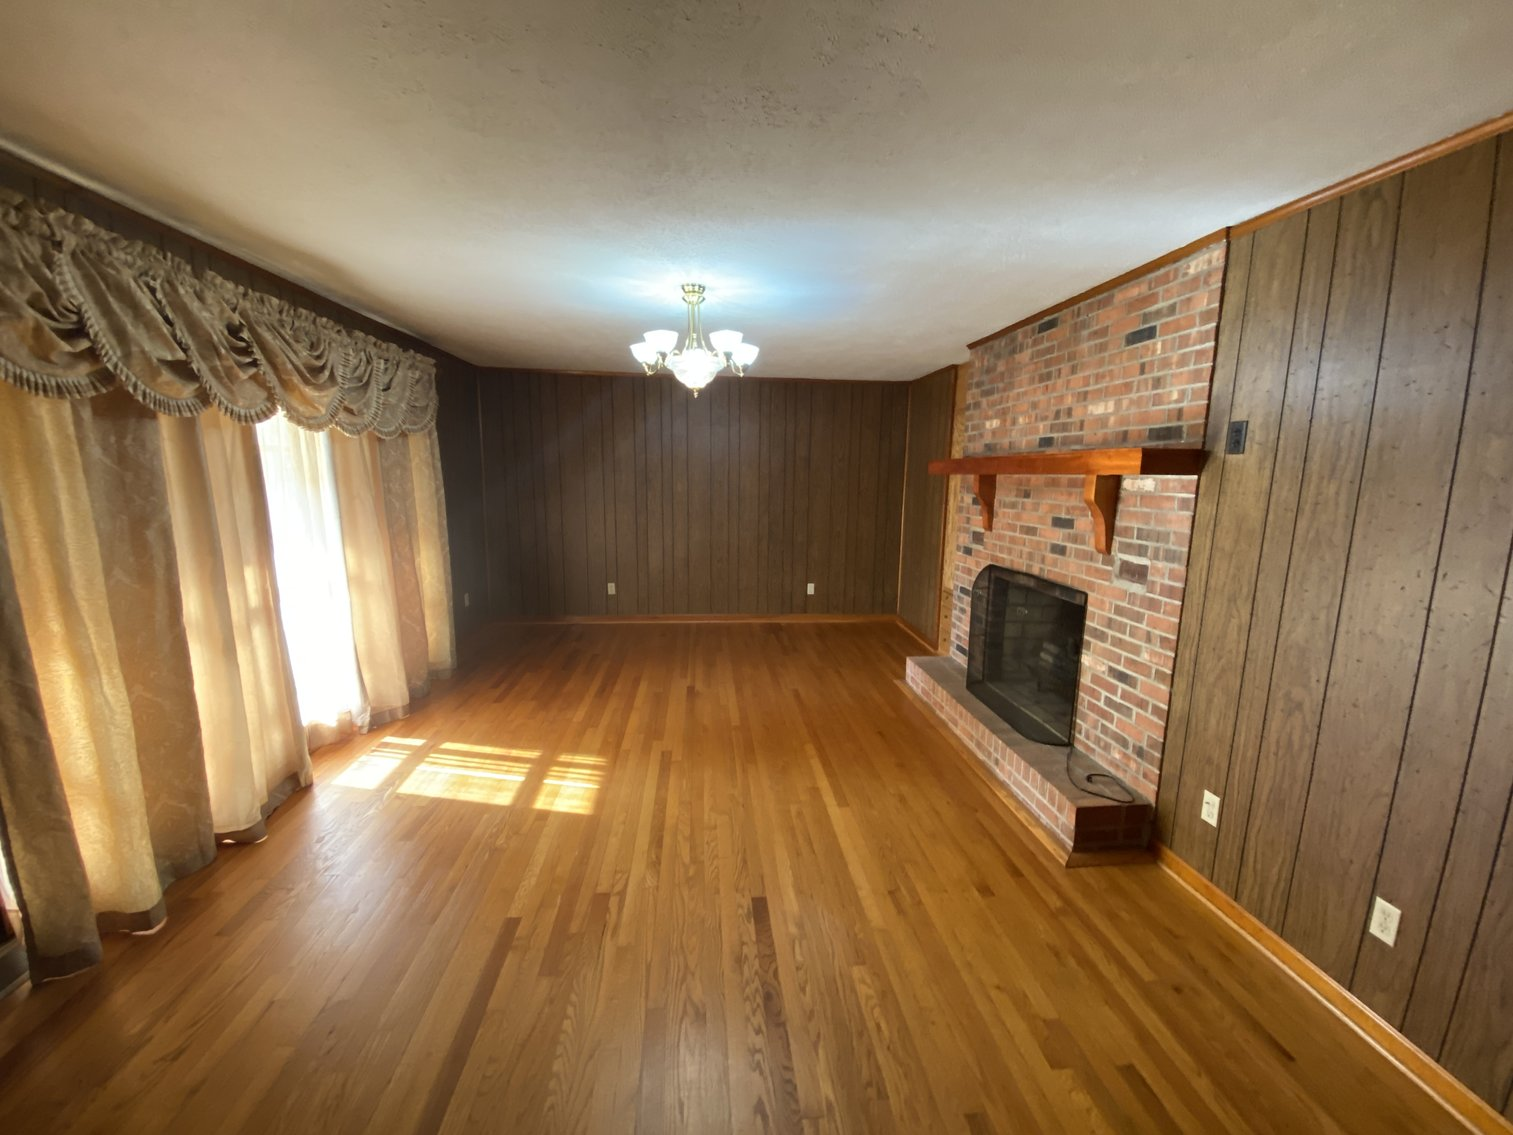 Image for 3 BR/3 BA Brick Home w/Outbuildings on 2.7 +/- Acres in Orange County, VA--SELLS to the HIGHEST BIDDER!!